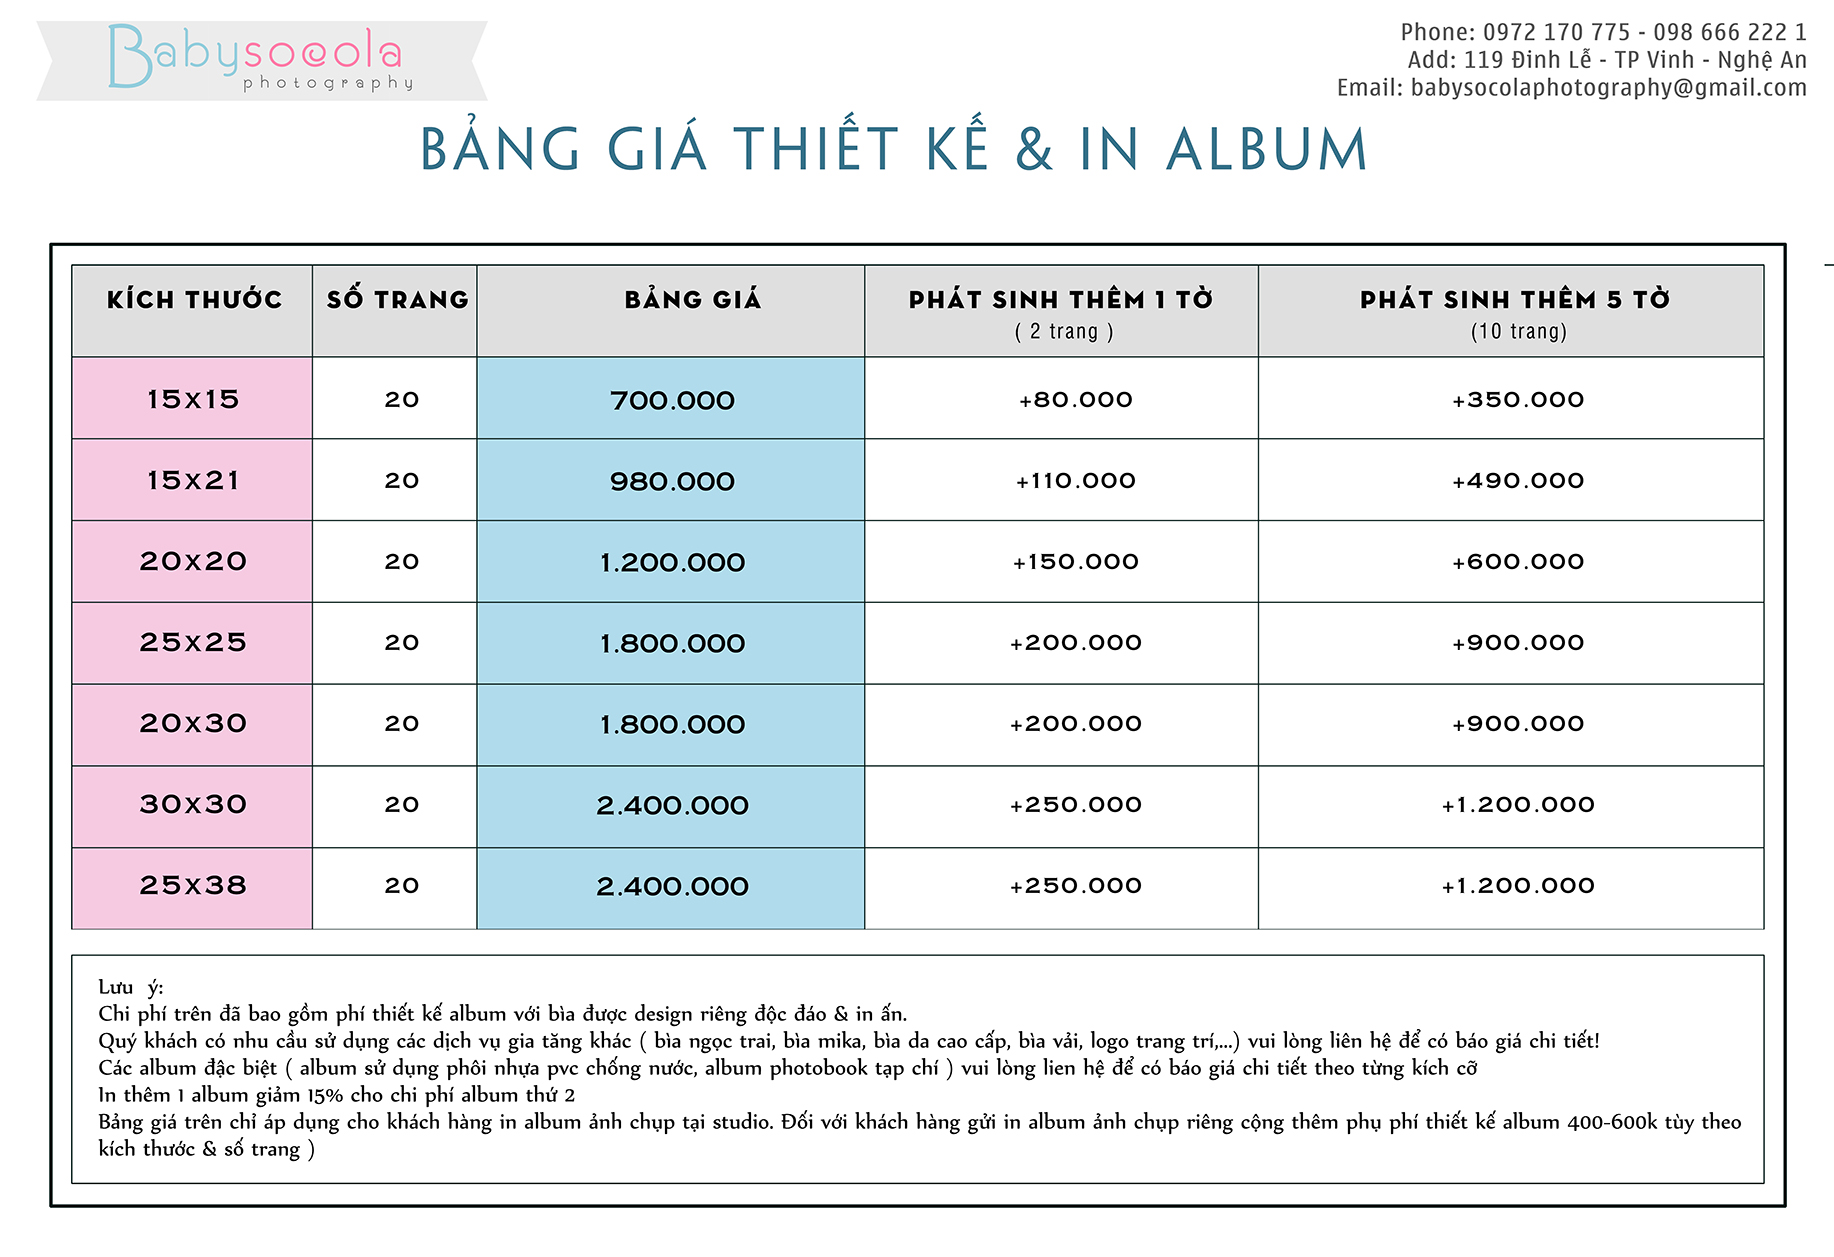 BANG GIA DAI LY 1 ALBUM